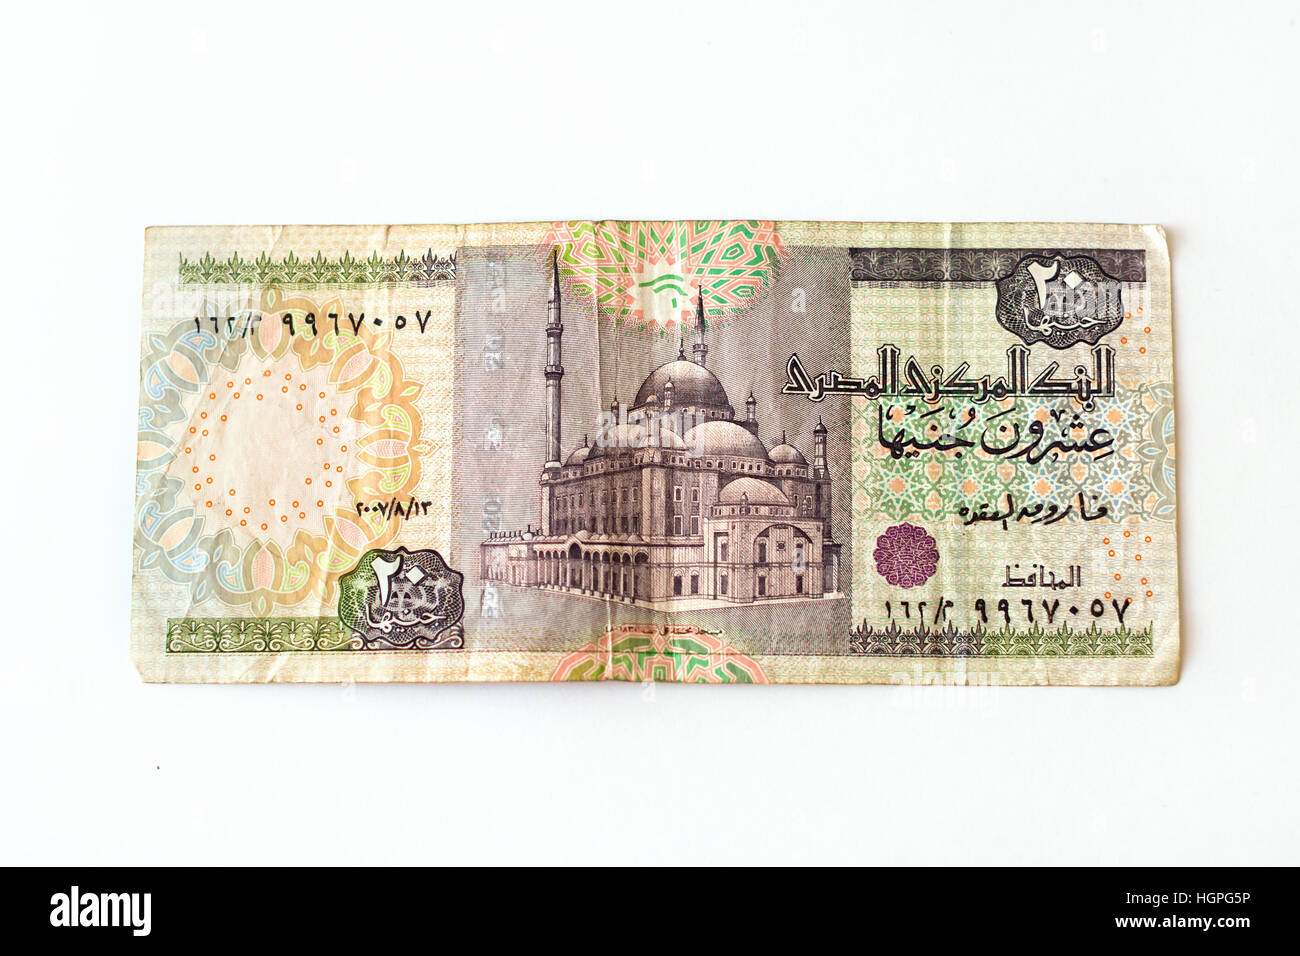 20 egyptian pounds old banknote denominations of twenty egp 20 egyptian pounds old banknote denominations of twenty egp symbol of egypt currency to wealth and investment eastern muslim culture ornament and biocorpaavc Images